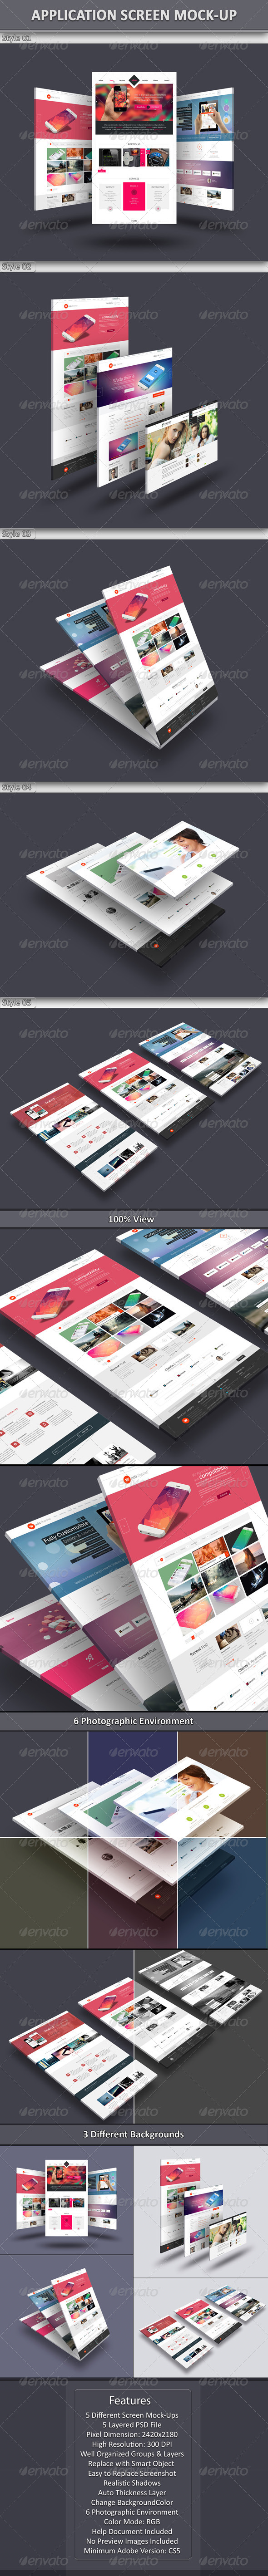 App Screen Mock-Up - Website Displays